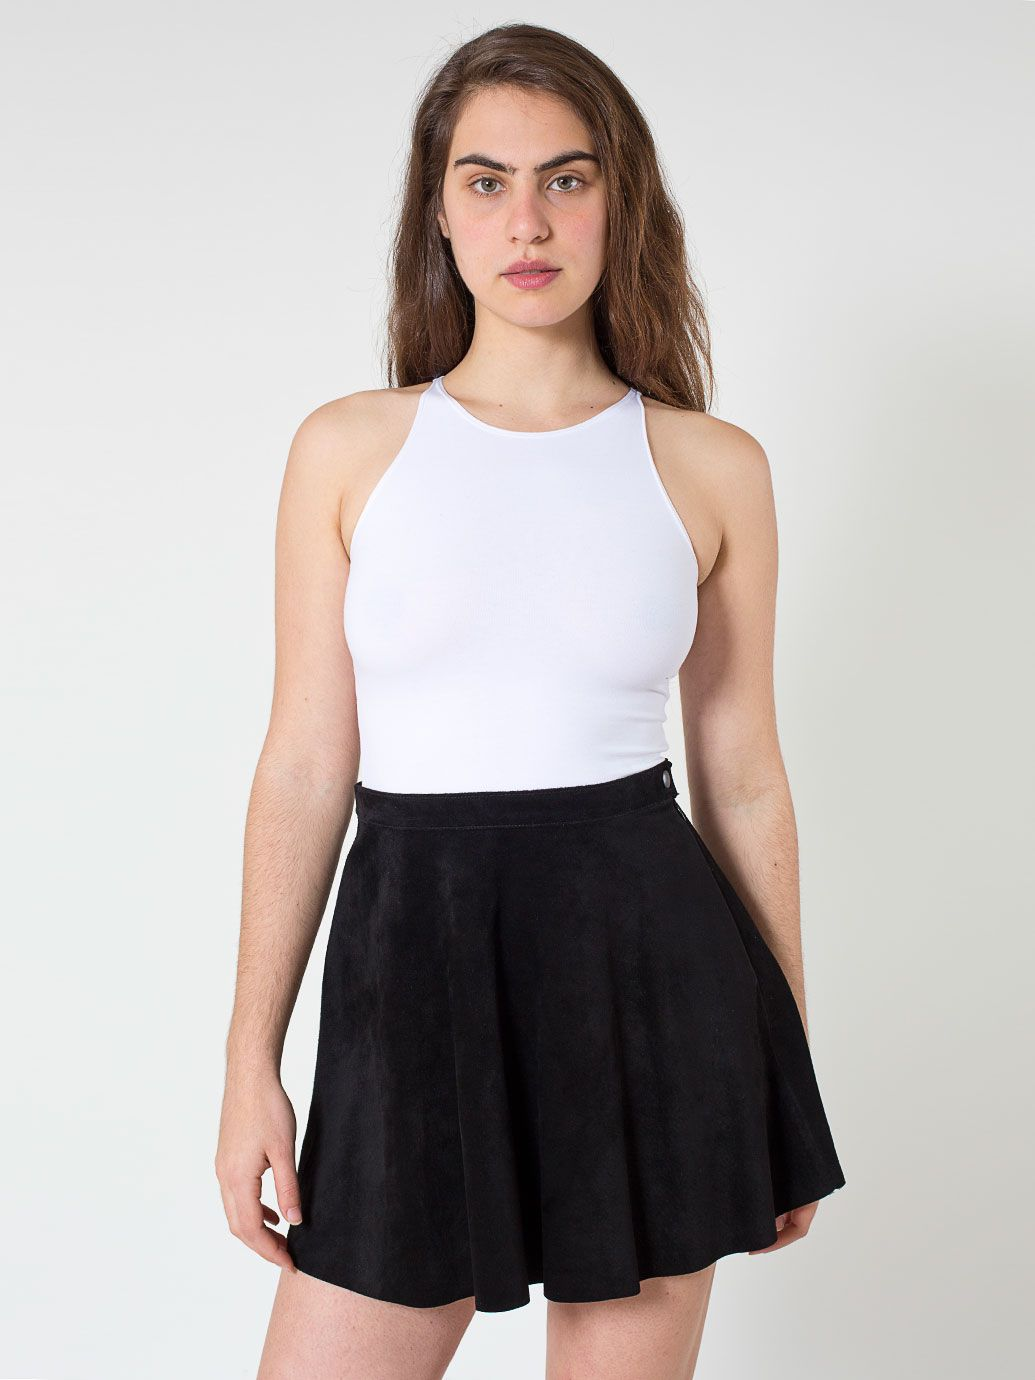 suede leather circle skirt american apparel